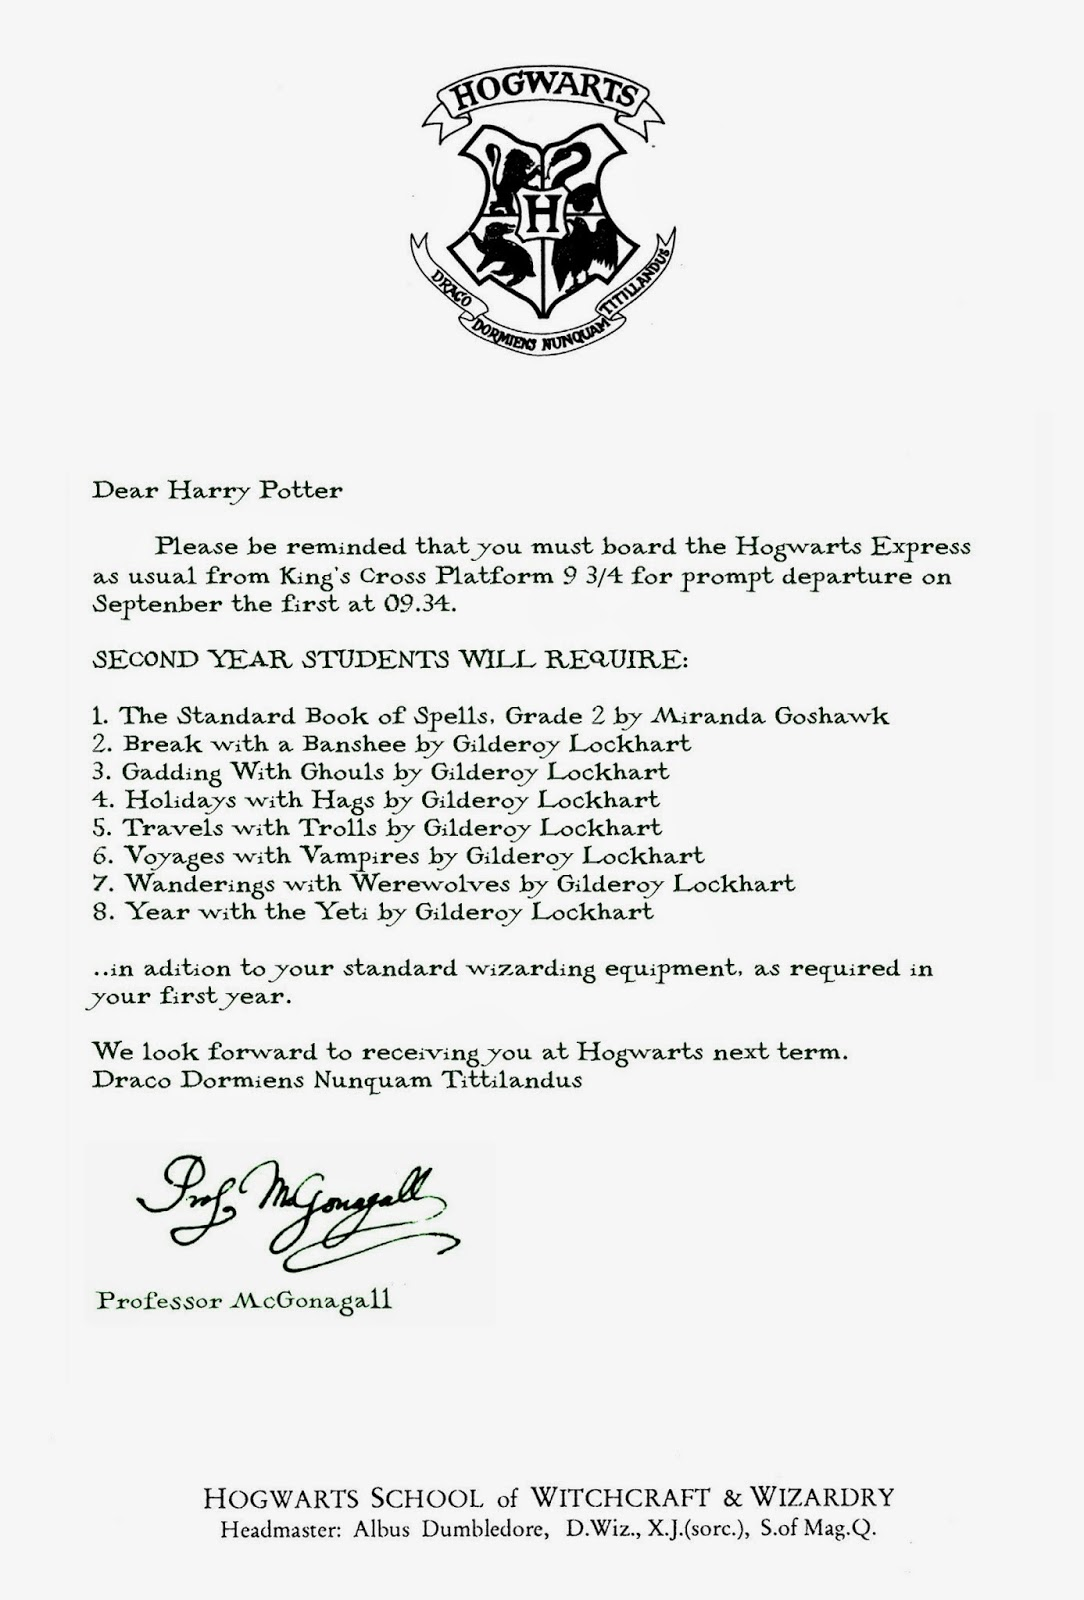 187 A Carta De Hogwarts 187 O Caldeir 227 O Saltitante 187 The